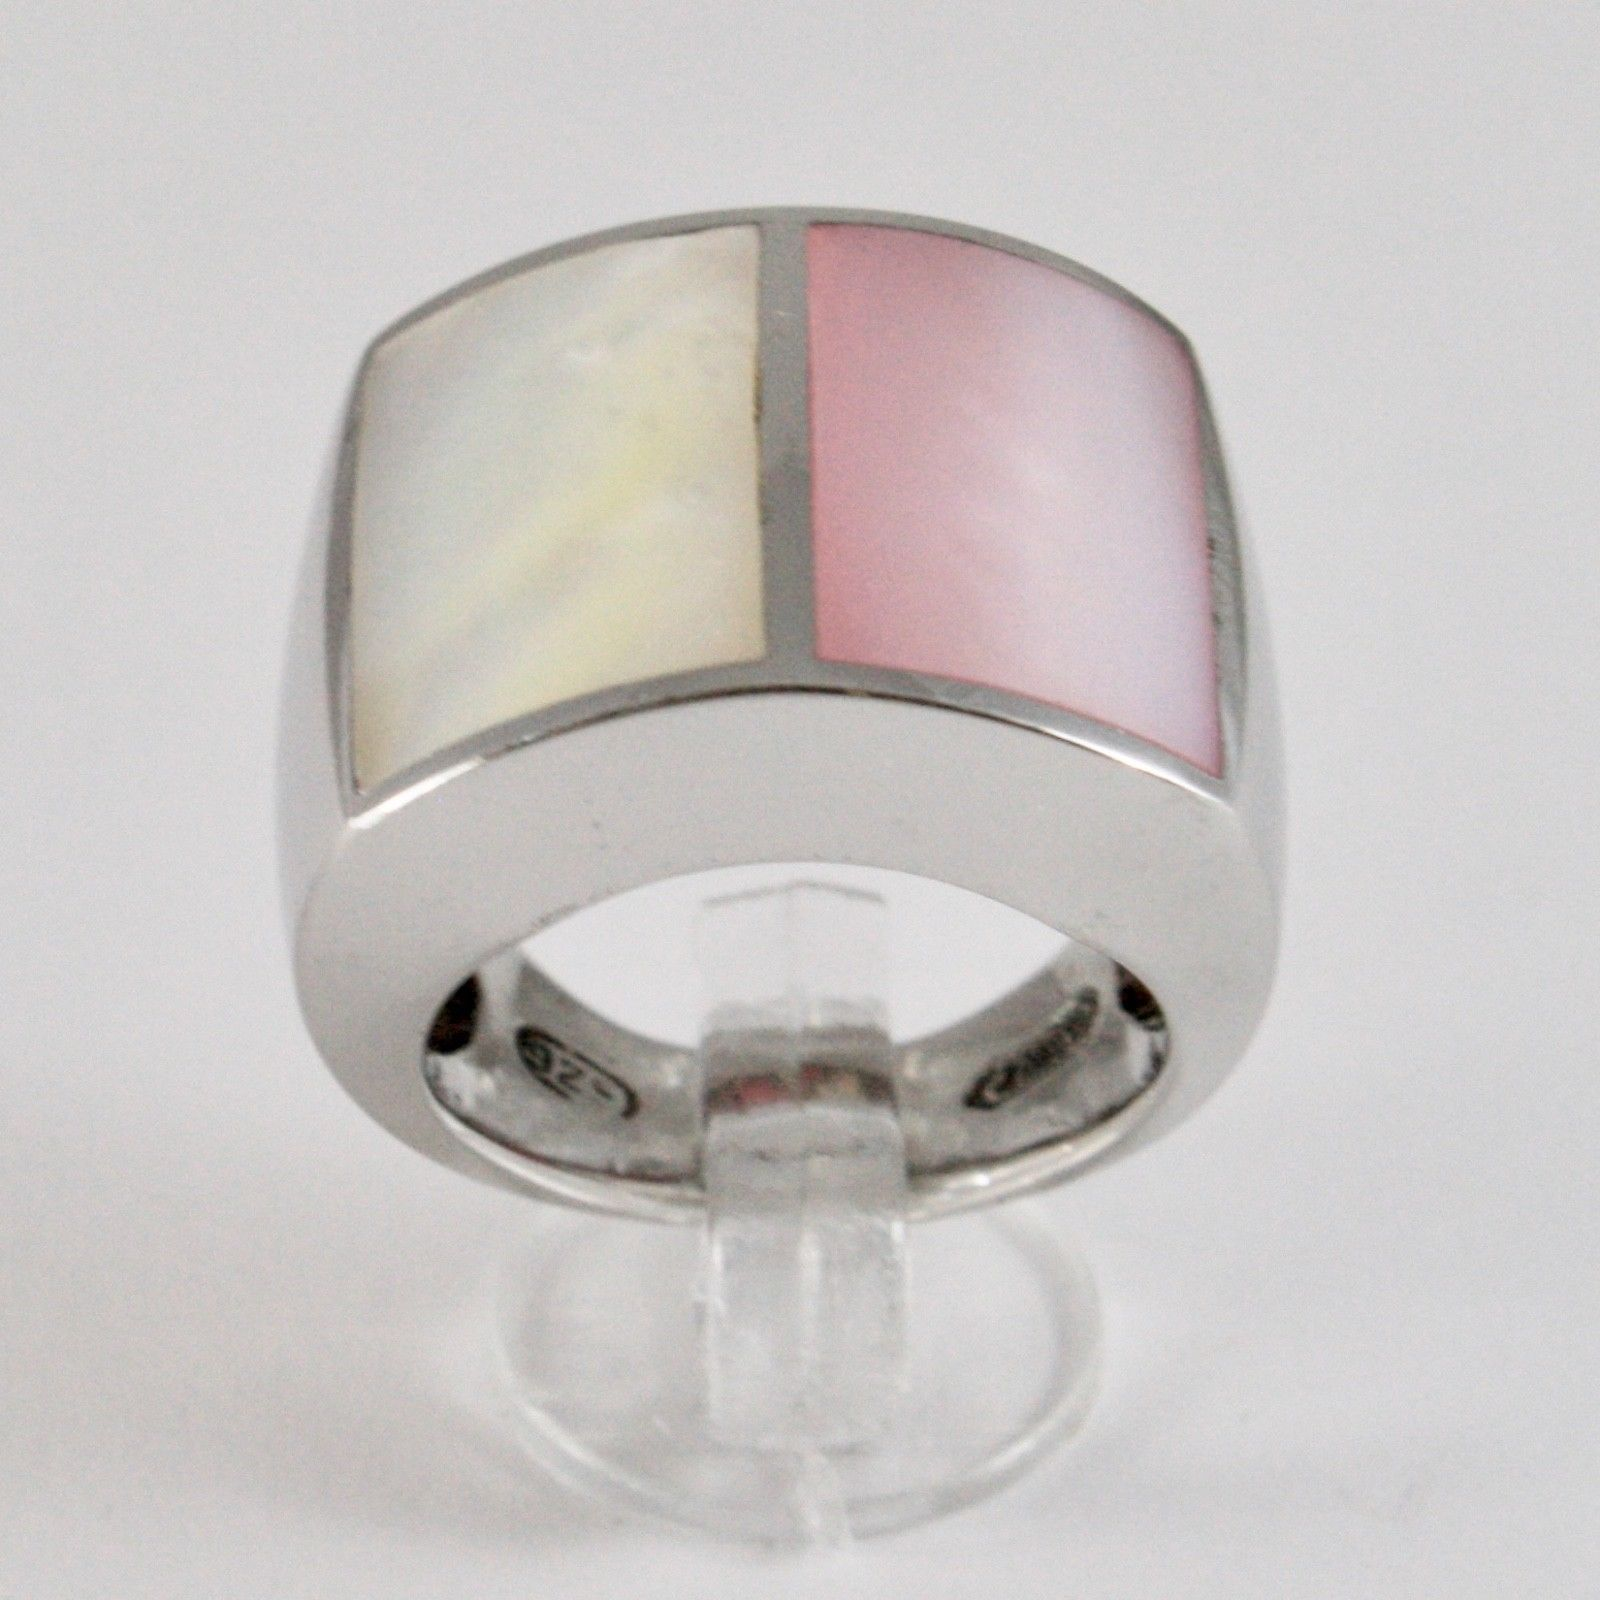 WIDE RING 925 SILVER WITH NACRE RECTANGULAR WHITE AND PINK